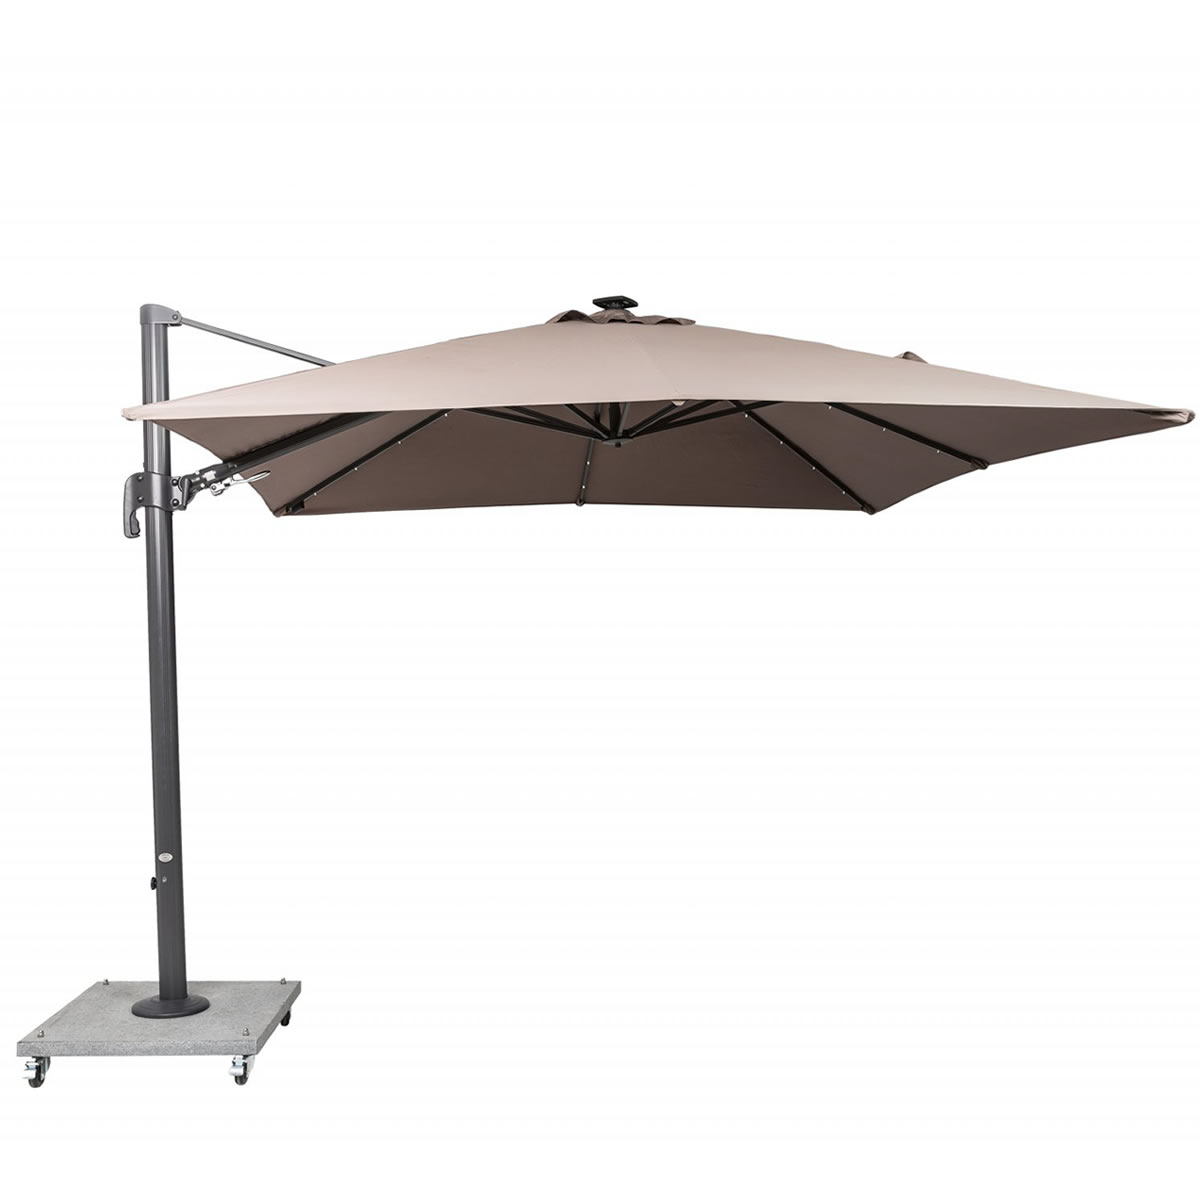 Extra image of LIFE Palermo 3.0m Square LED Cantilever Parasol - Taupe/Lava